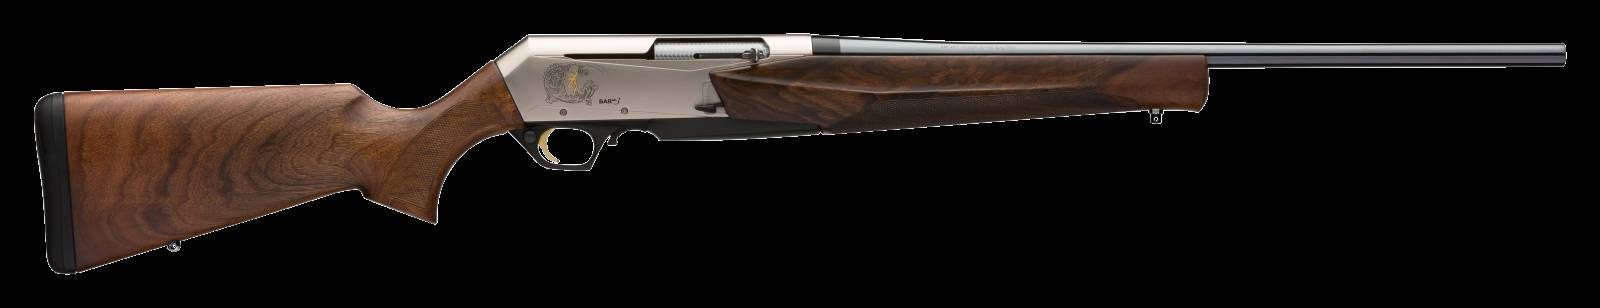 Browning 031047218 BAR MK3 Semi-Automatic 308 Winchester/7.62 NATO 22